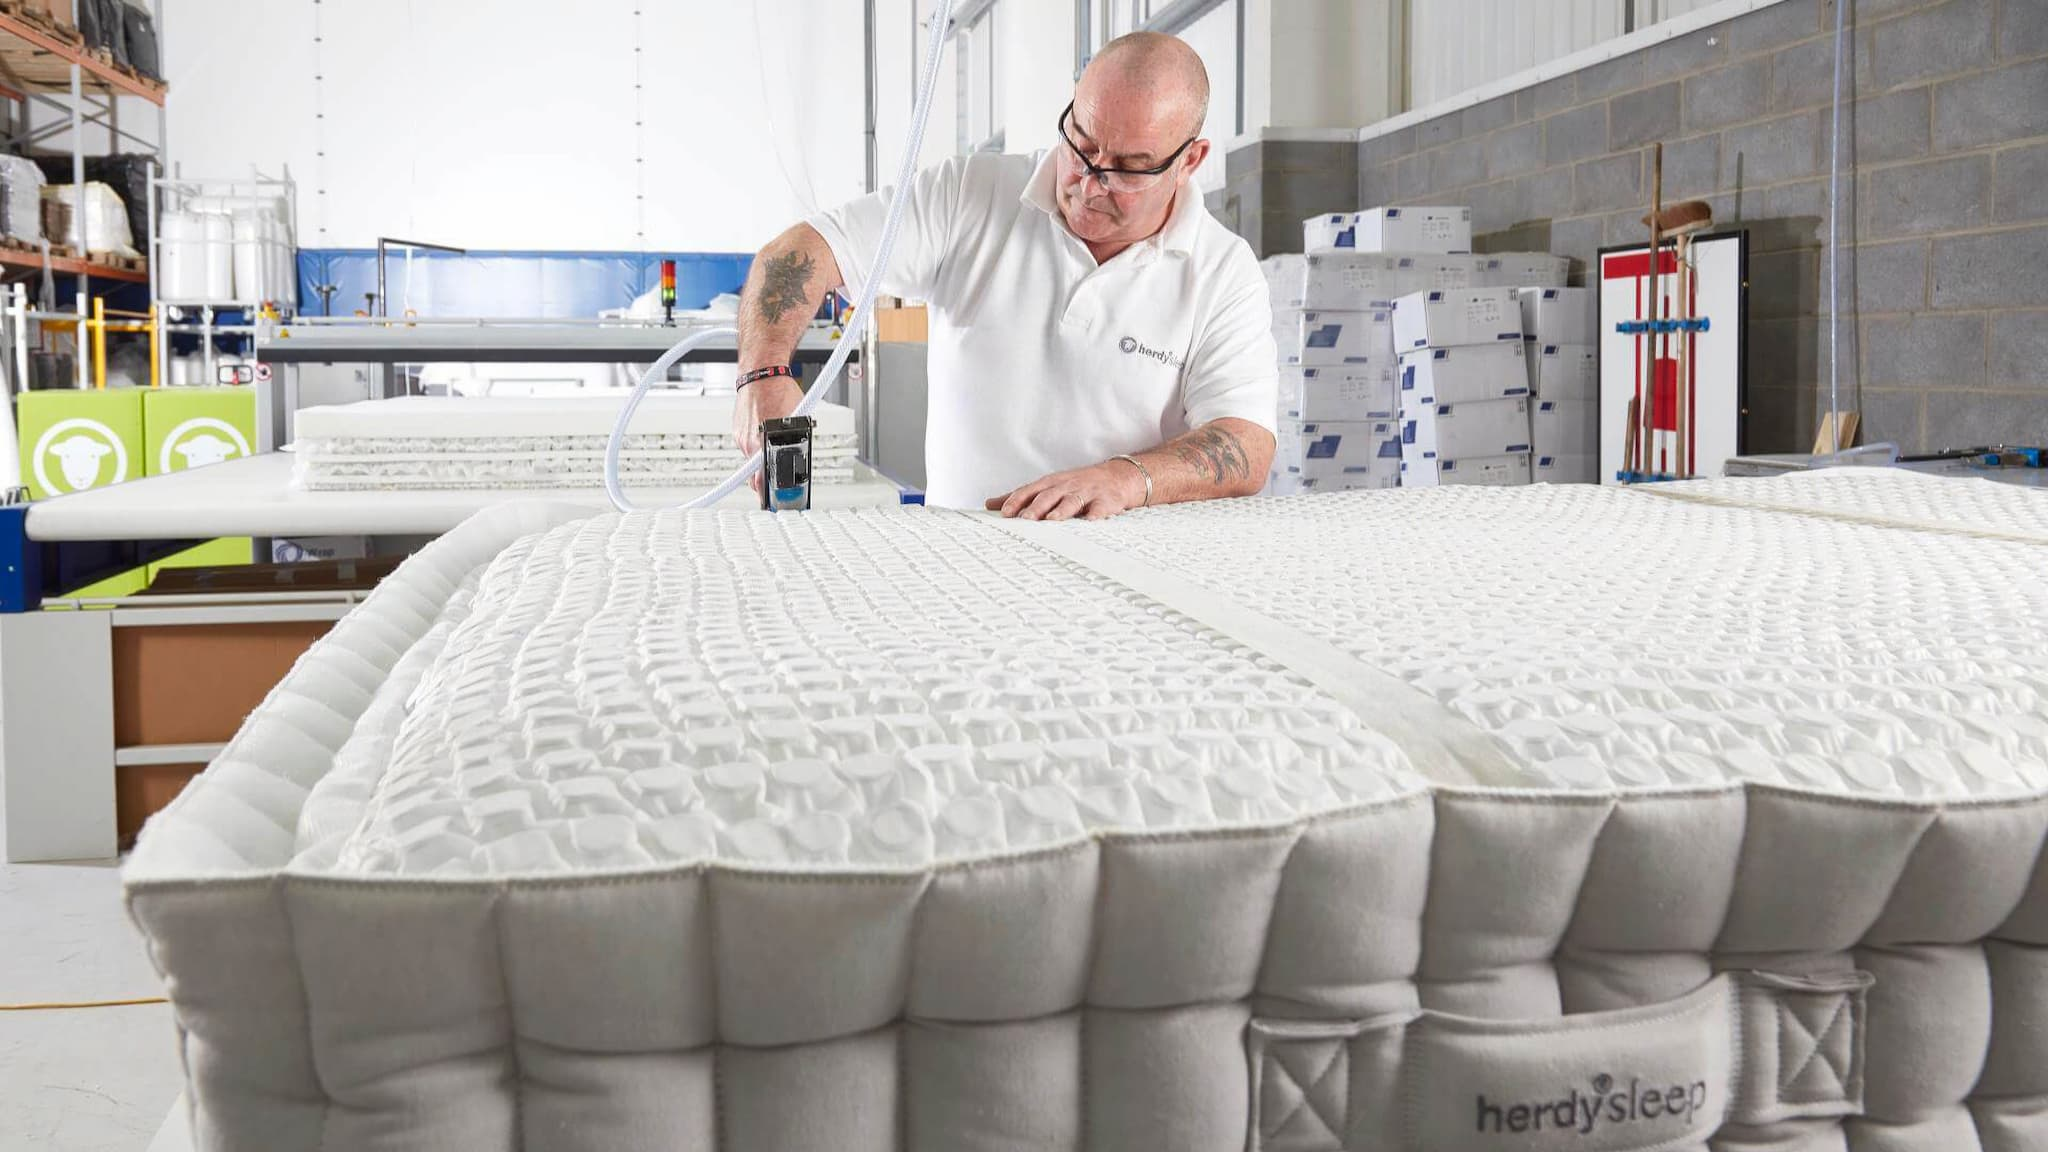 The borders of the mattress are attached to the core